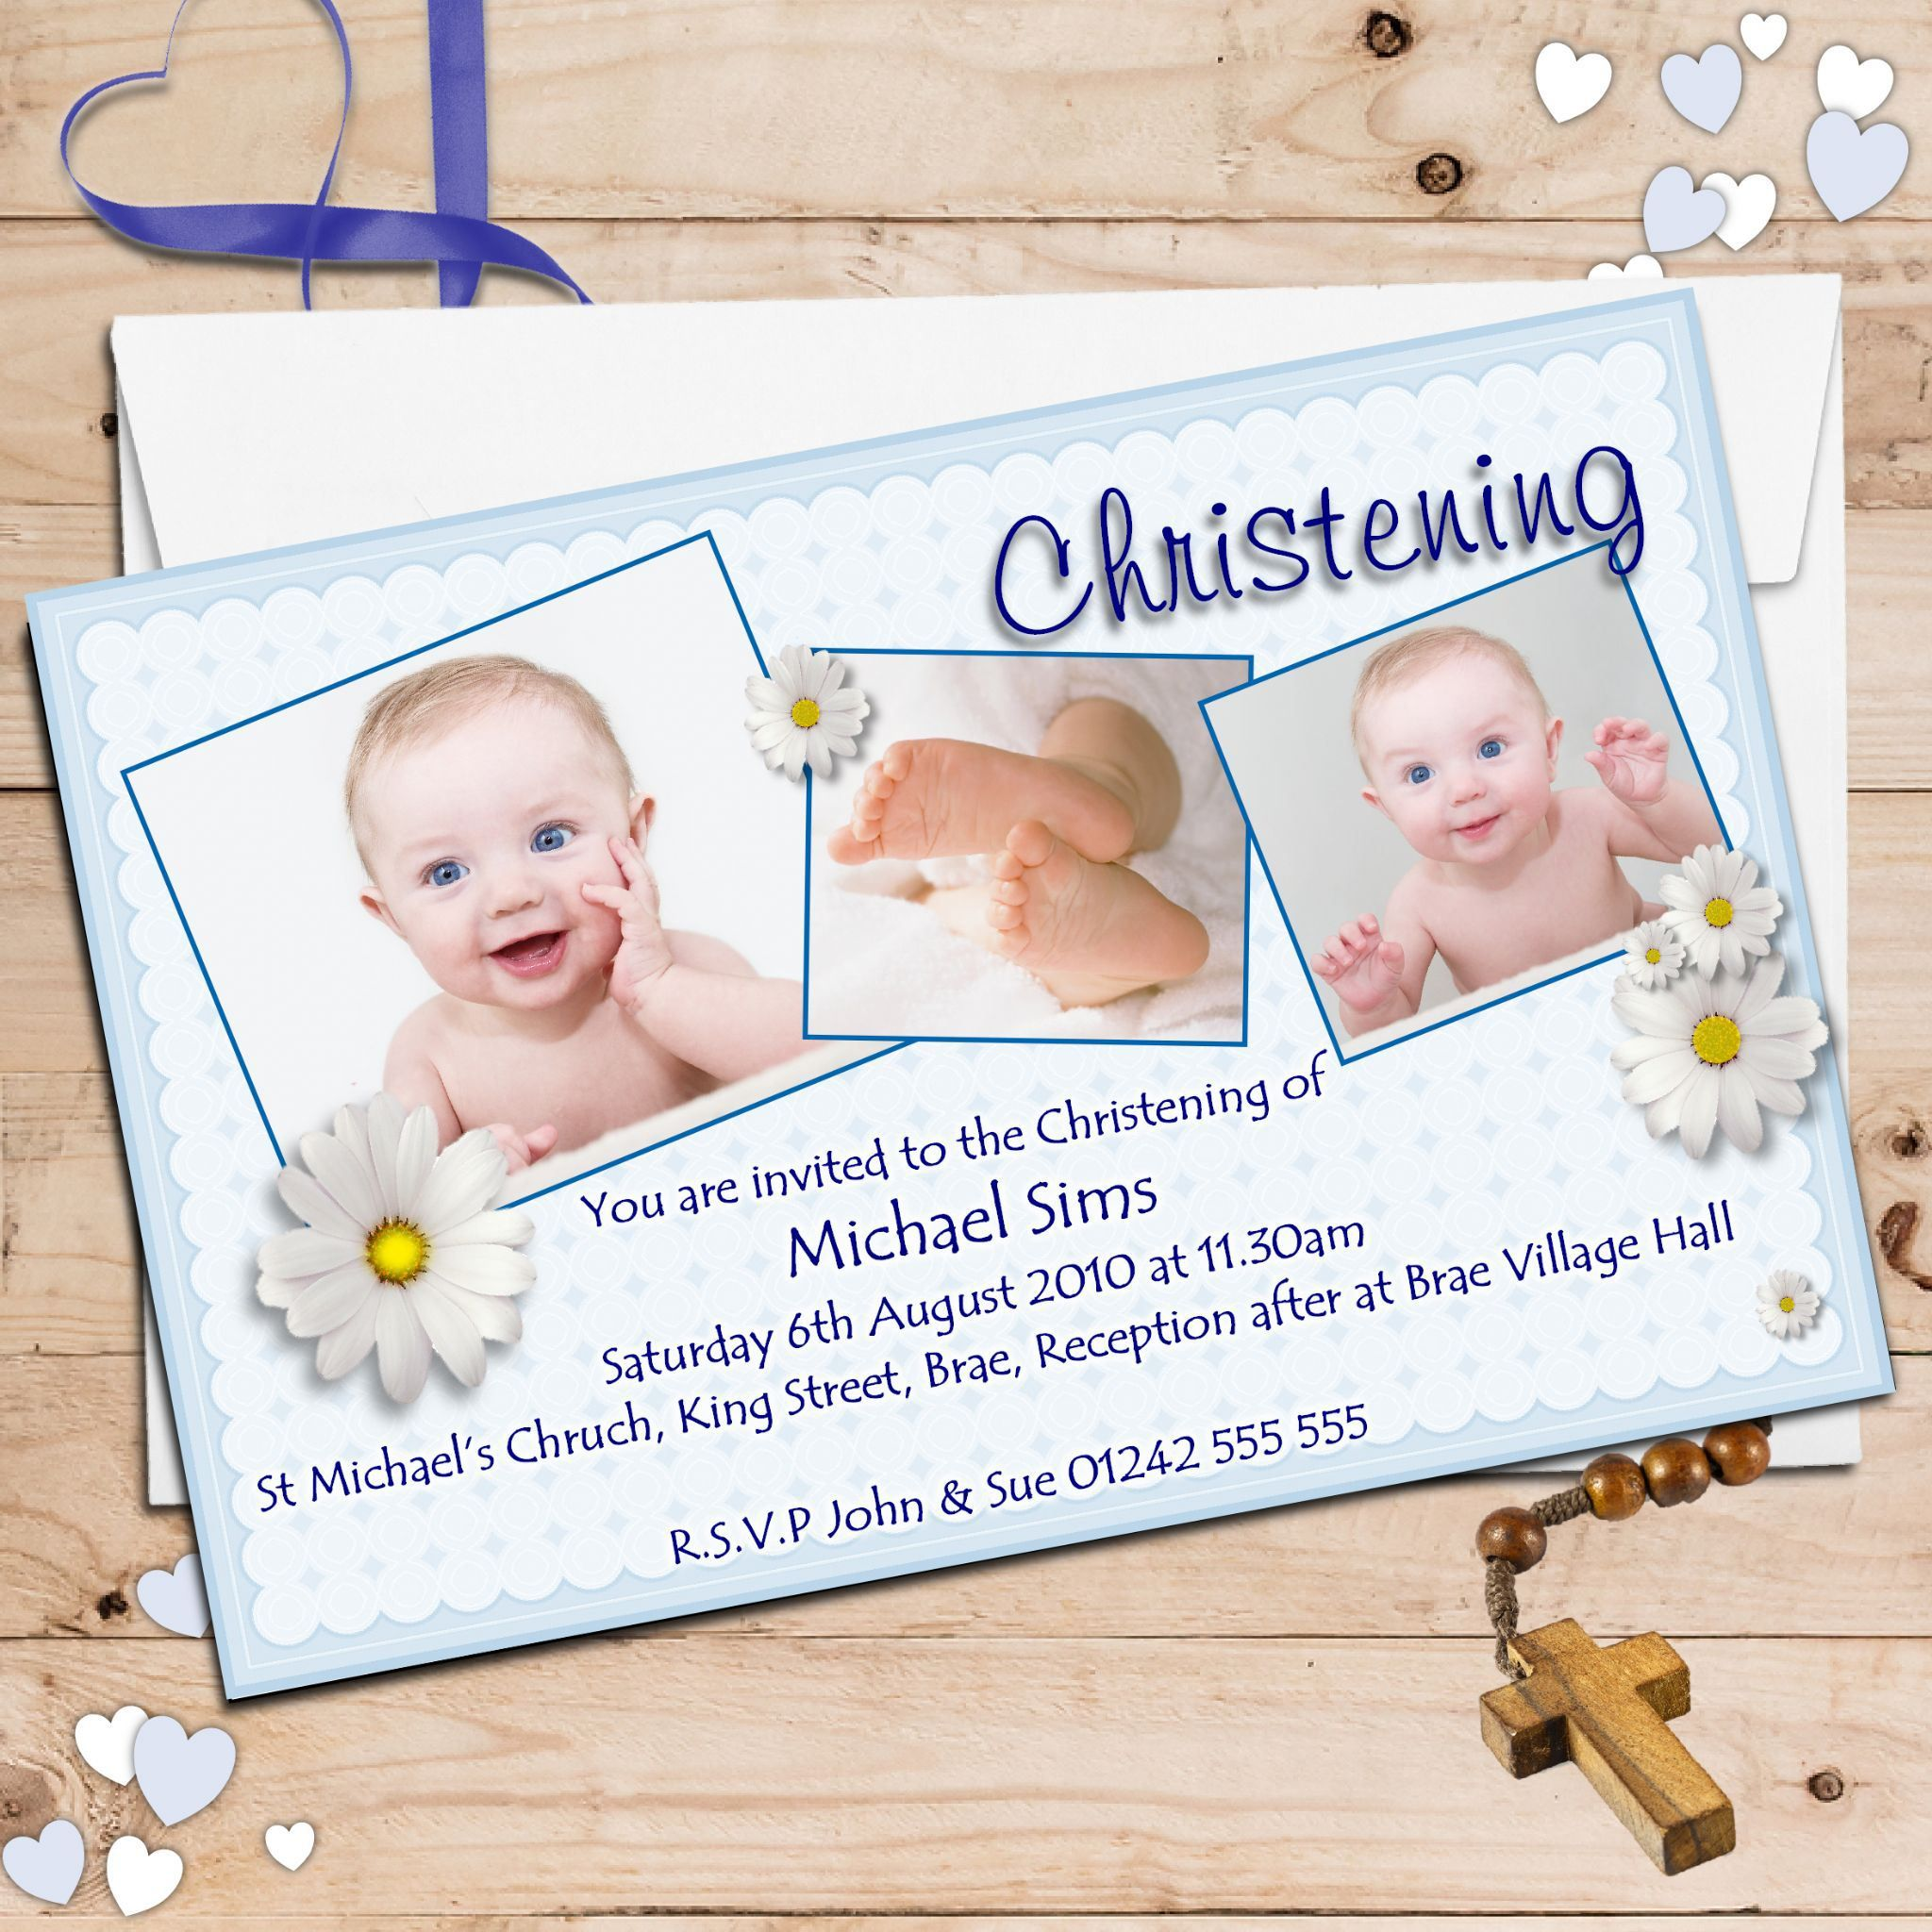 Invitation card for christening invitation card for christening invitation card for christening invitation card for christening blank background superb invitation superb invitation stopboris